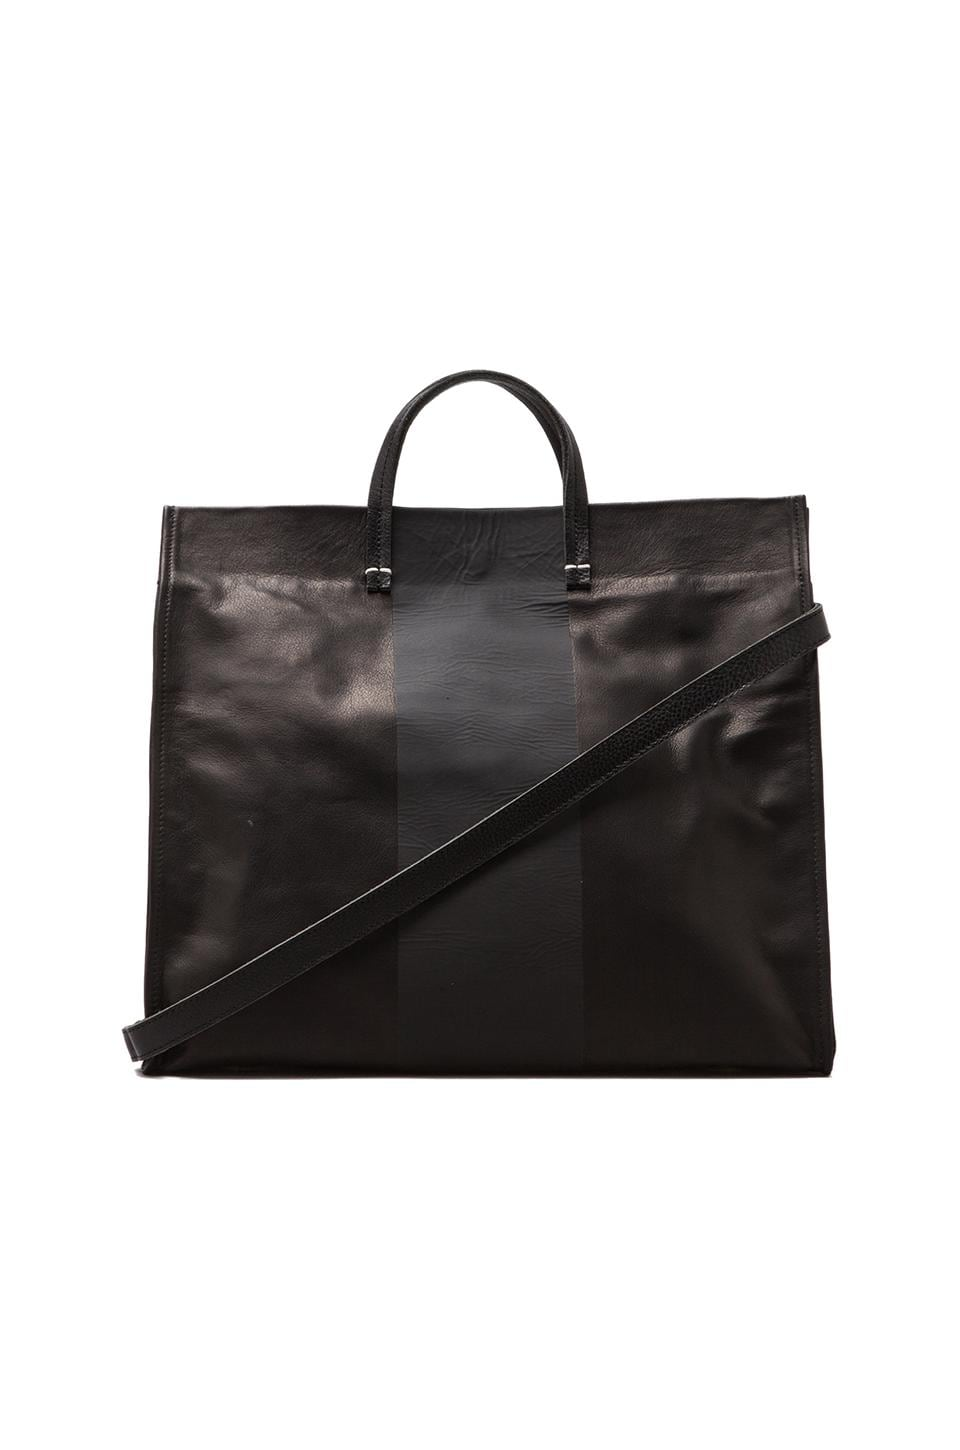 Clare V. Simple Tote in Velvet/Black